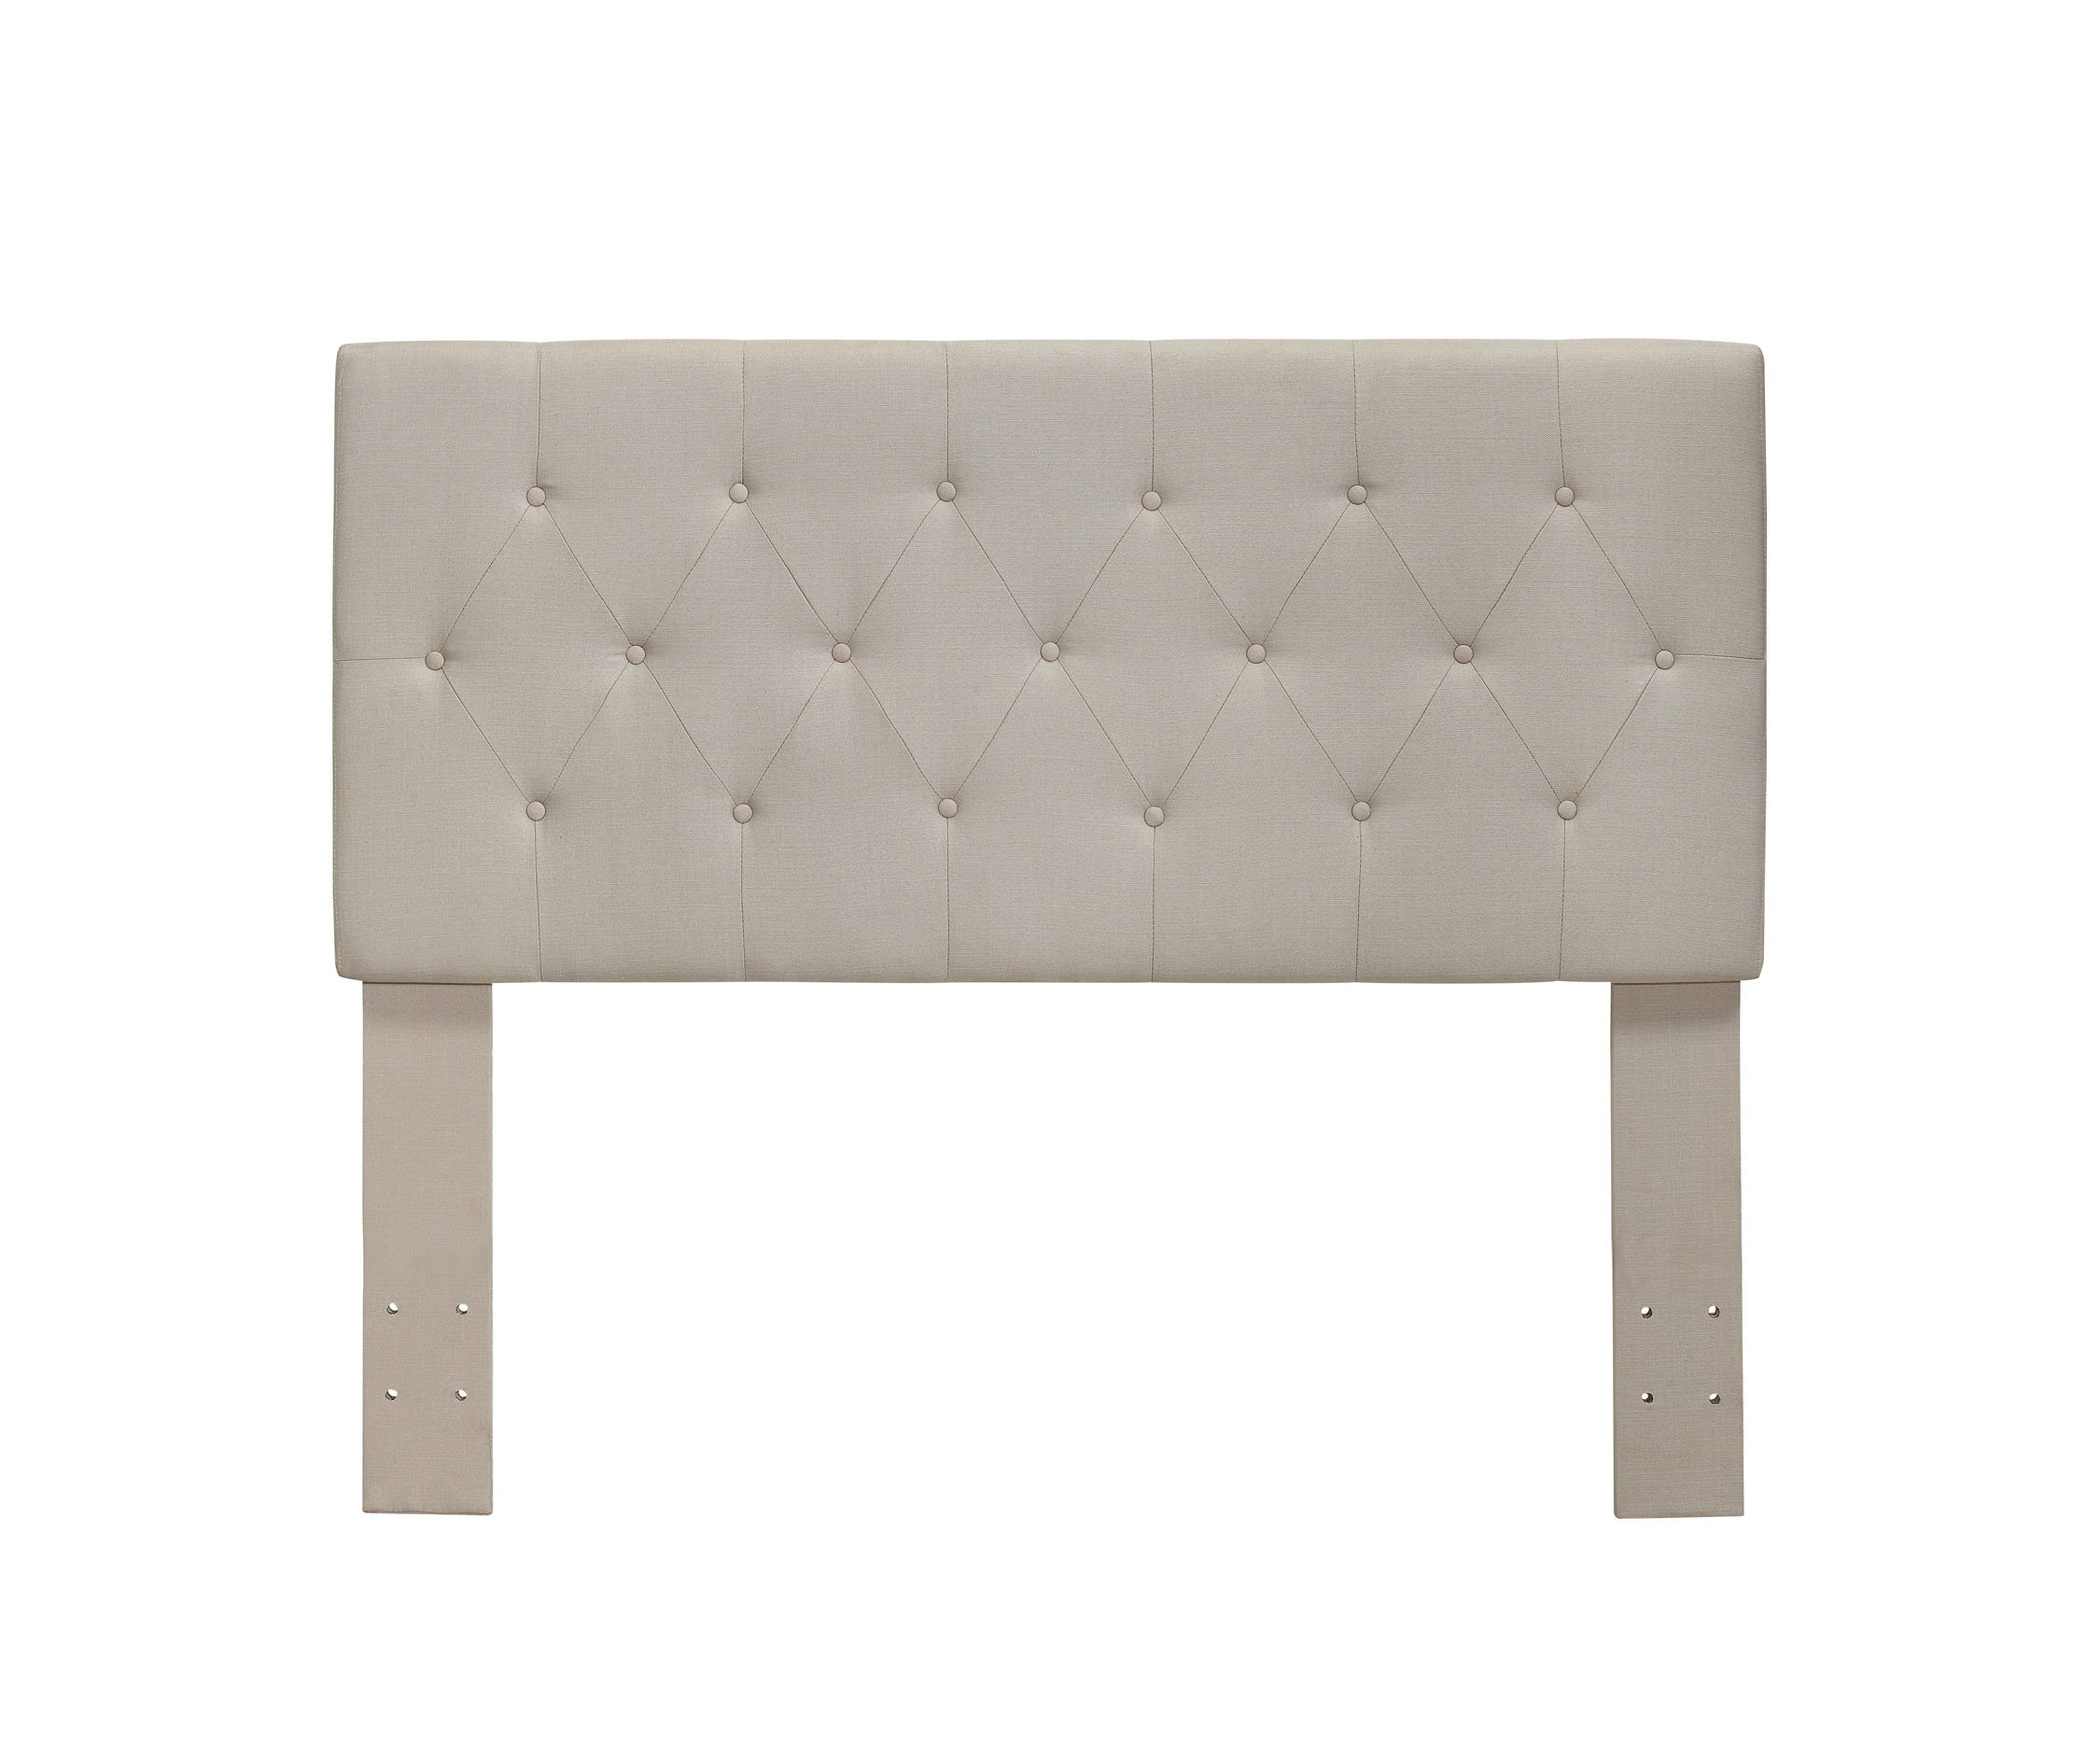 Furniture of America Gardenia Button Tufted Fabric Headboard, Twin, Ivory by Furniture of America